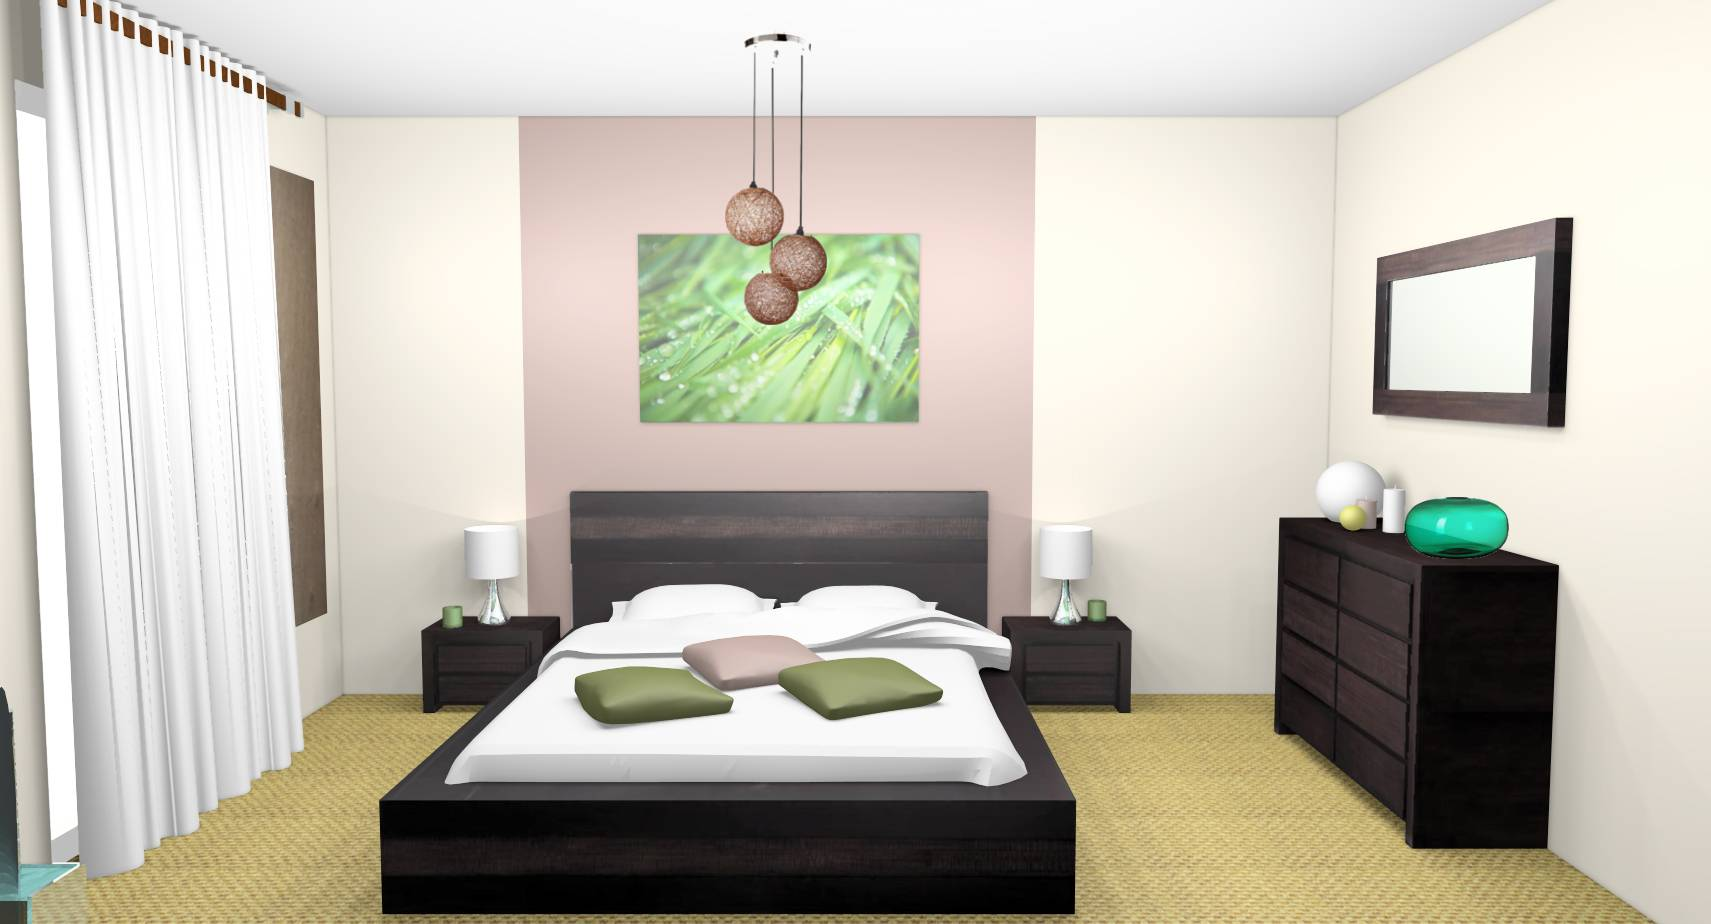 D co chambre zen adulte for Decoration chambres a coucher adultes